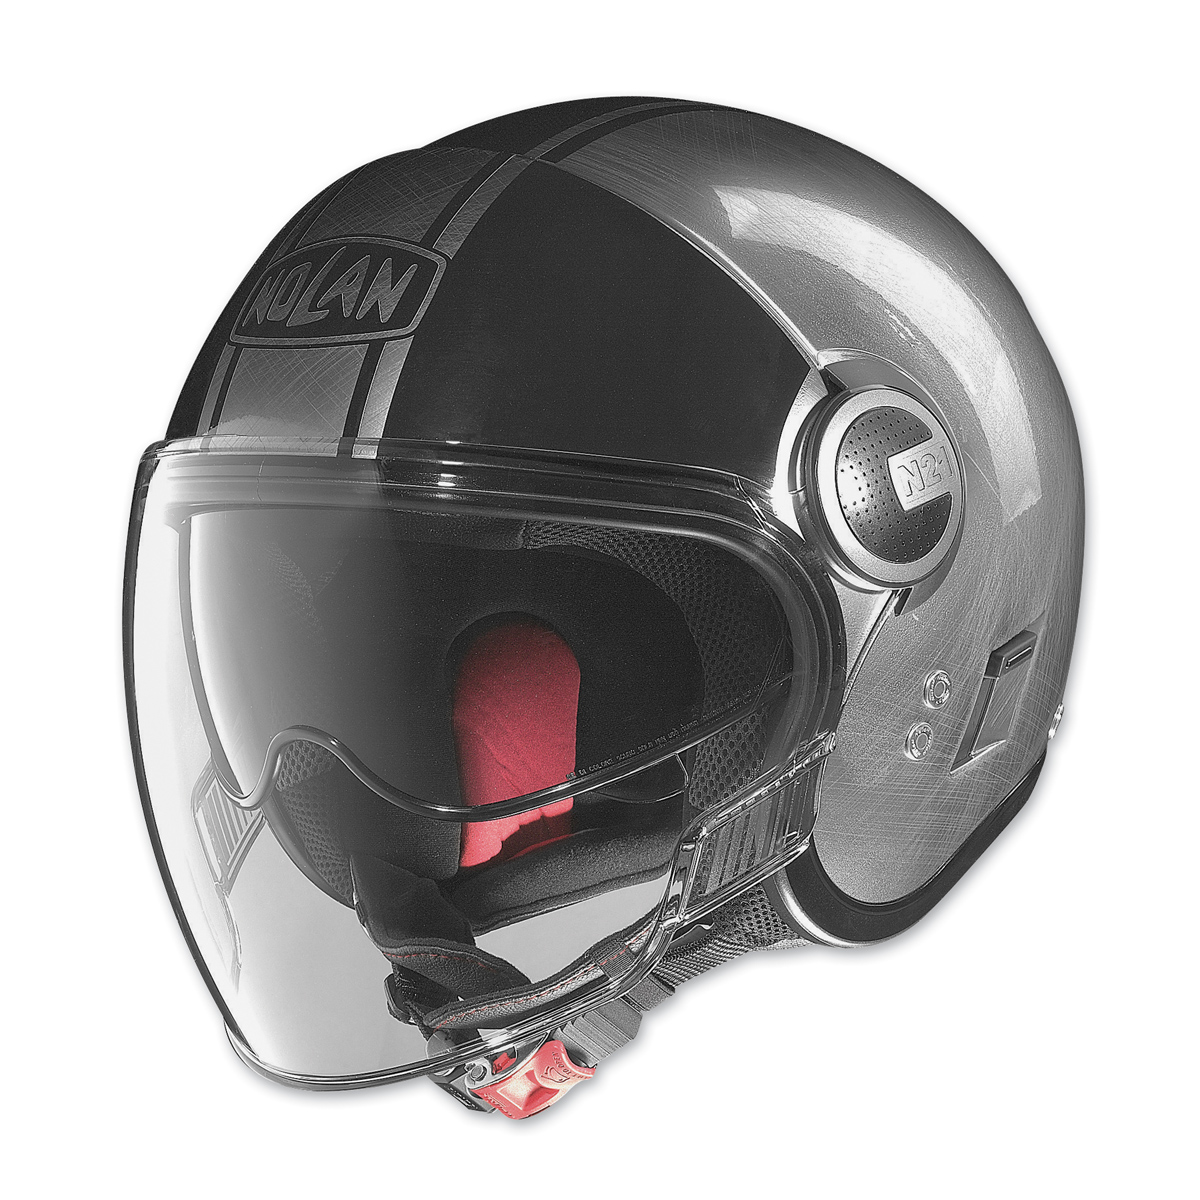 nolan n21 visor duetto scratched chrome black open face helmet 920 654 j p cycles. Black Bedroom Furniture Sets. Home Design Ideas